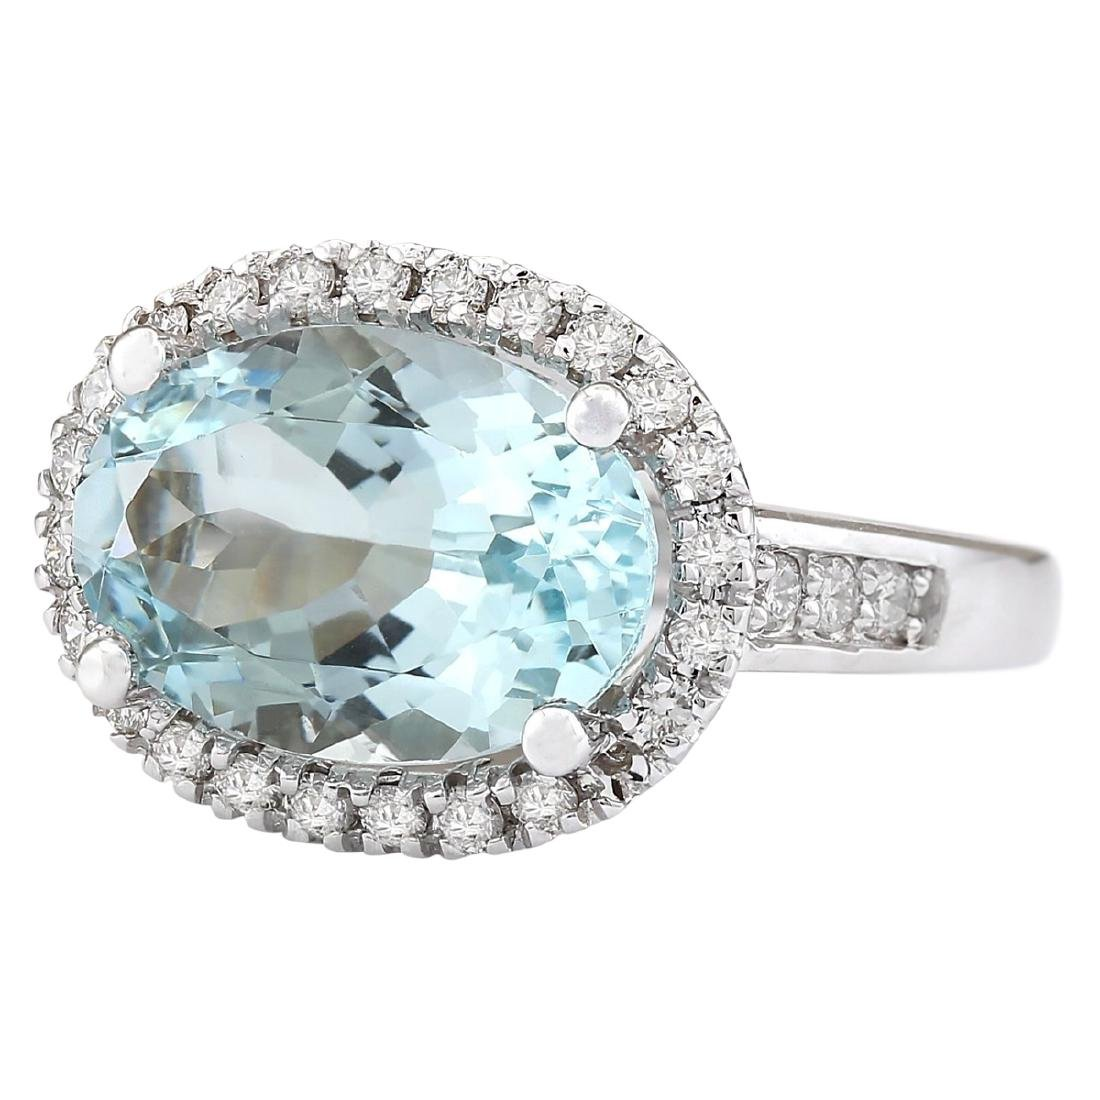 6.04 CTW Natural Aquamarine And Diamond Ring In 18K - 2